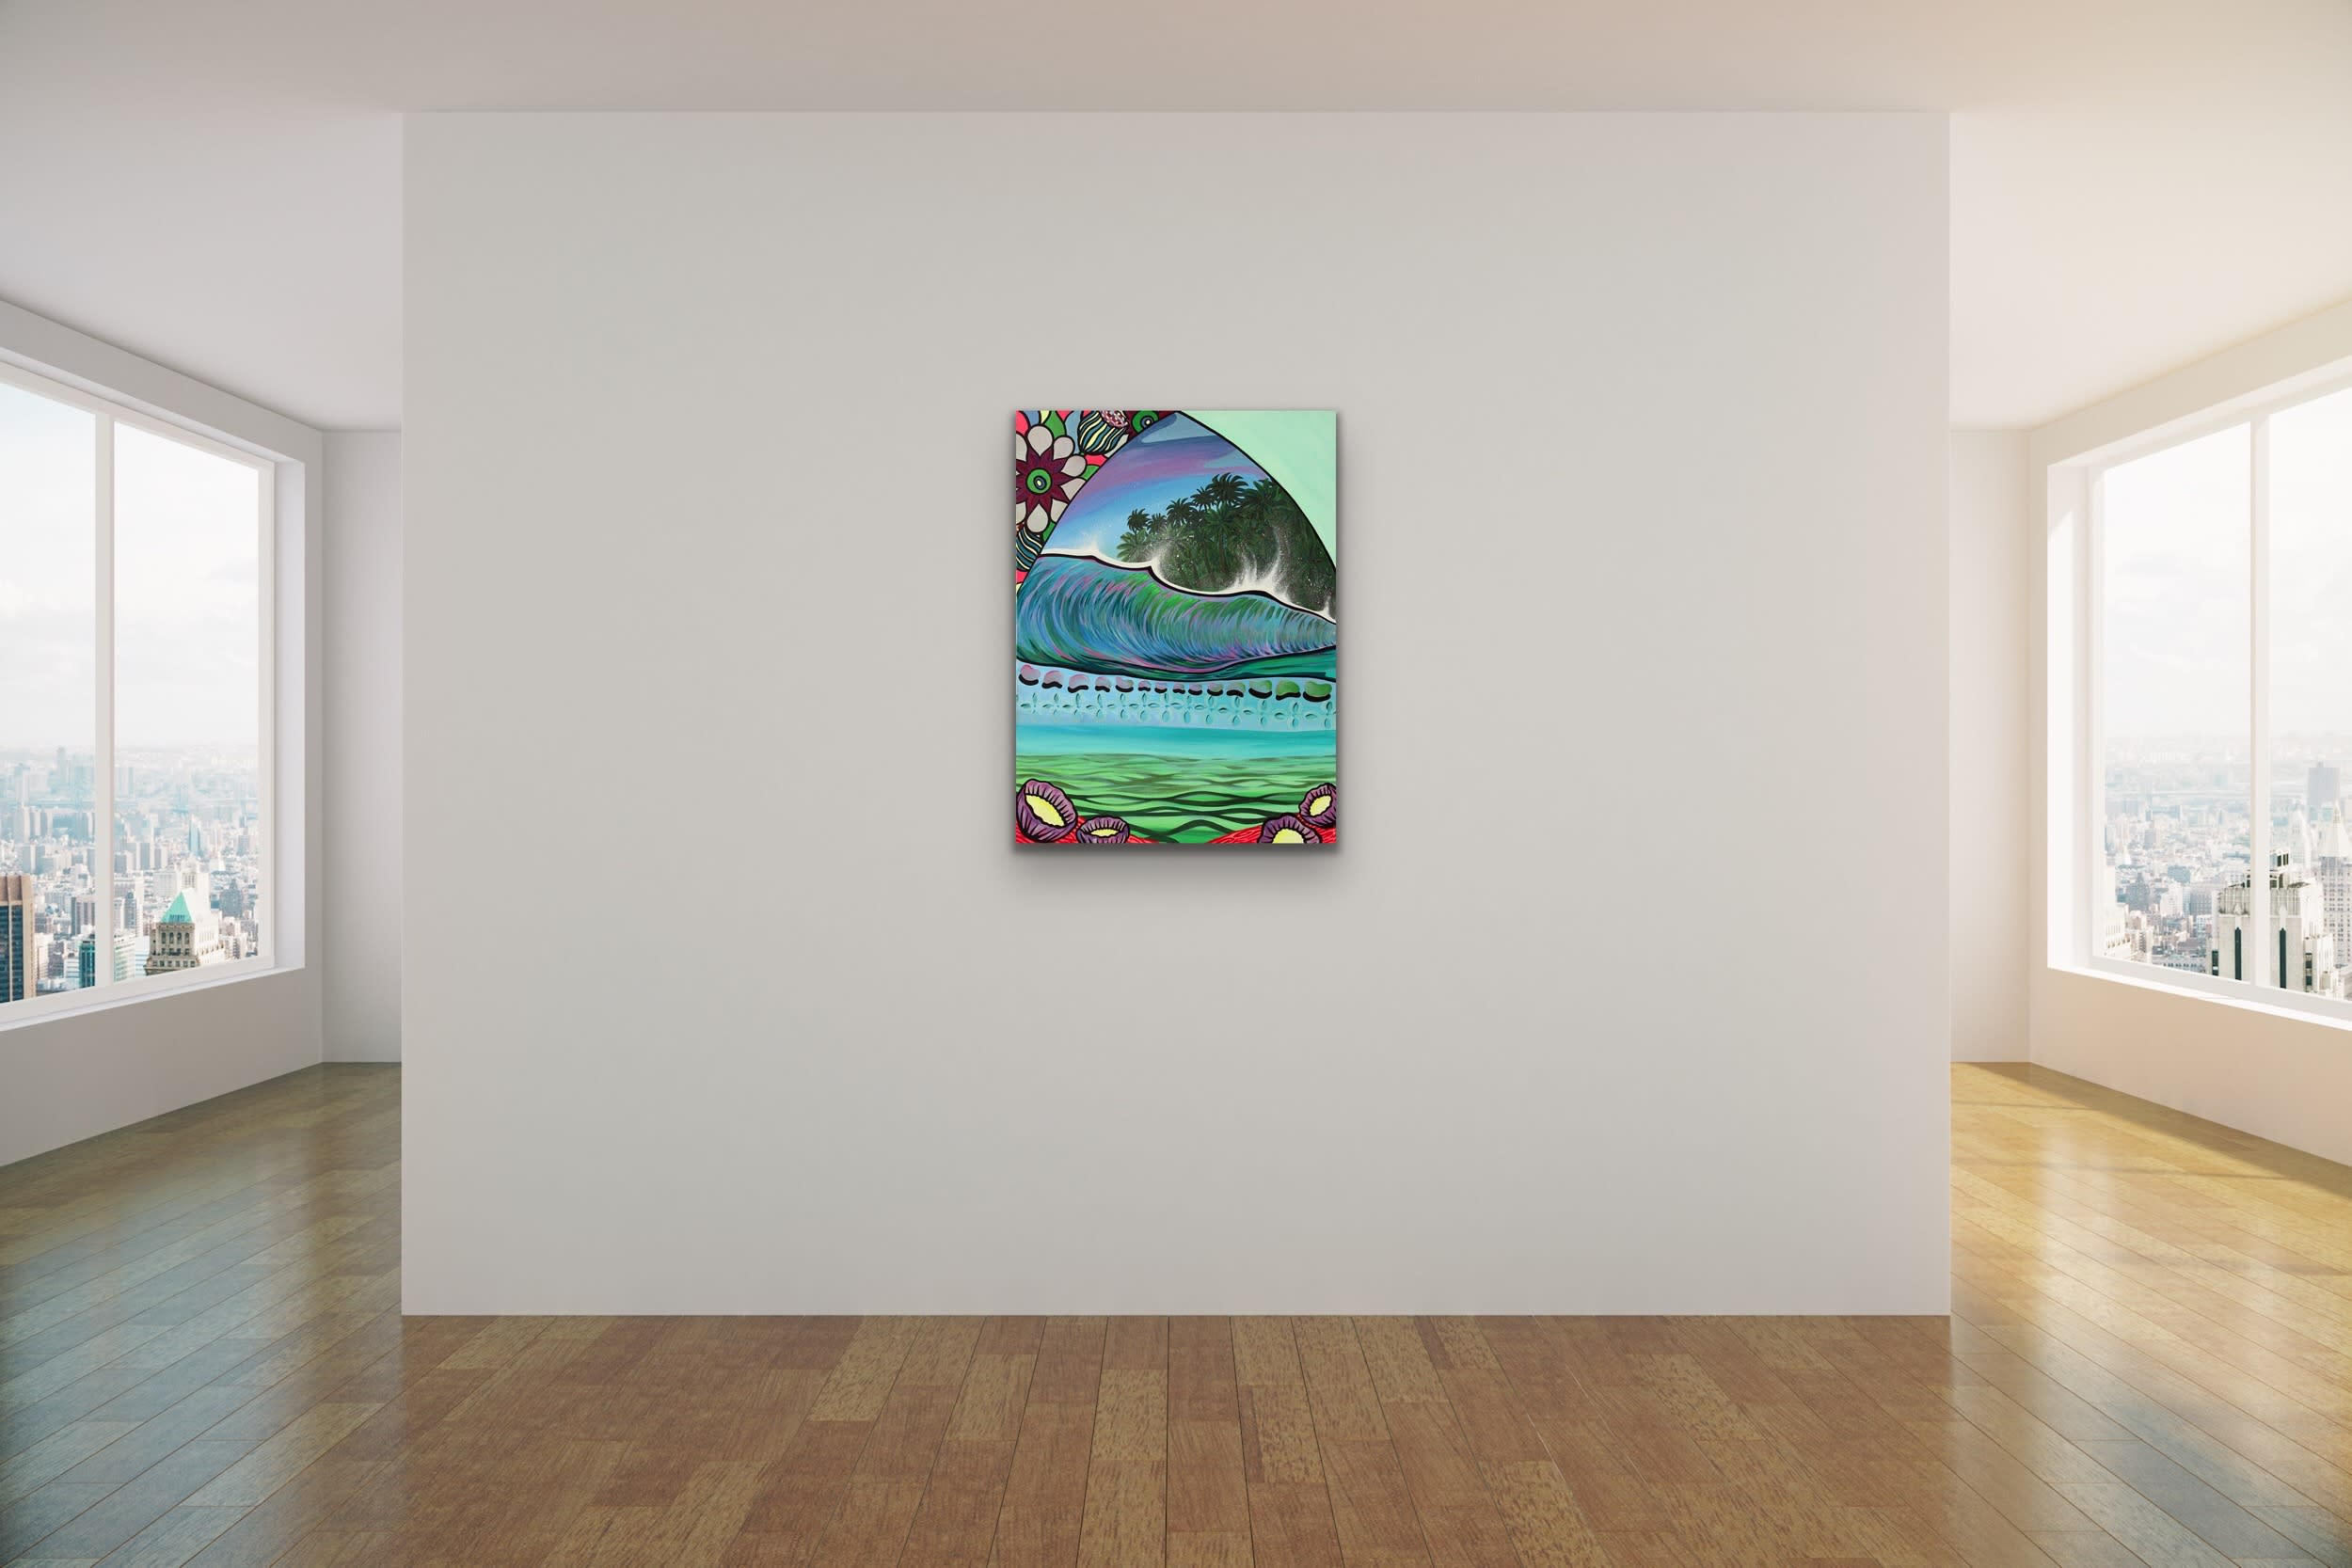 <div class='title'>           Shannon Oconnell Paintings Mock Ups Evo Art Maui Lahain Front Street Gallery Collect Popular Colorful Ocean Flowers Scenery Waves 24         </div>